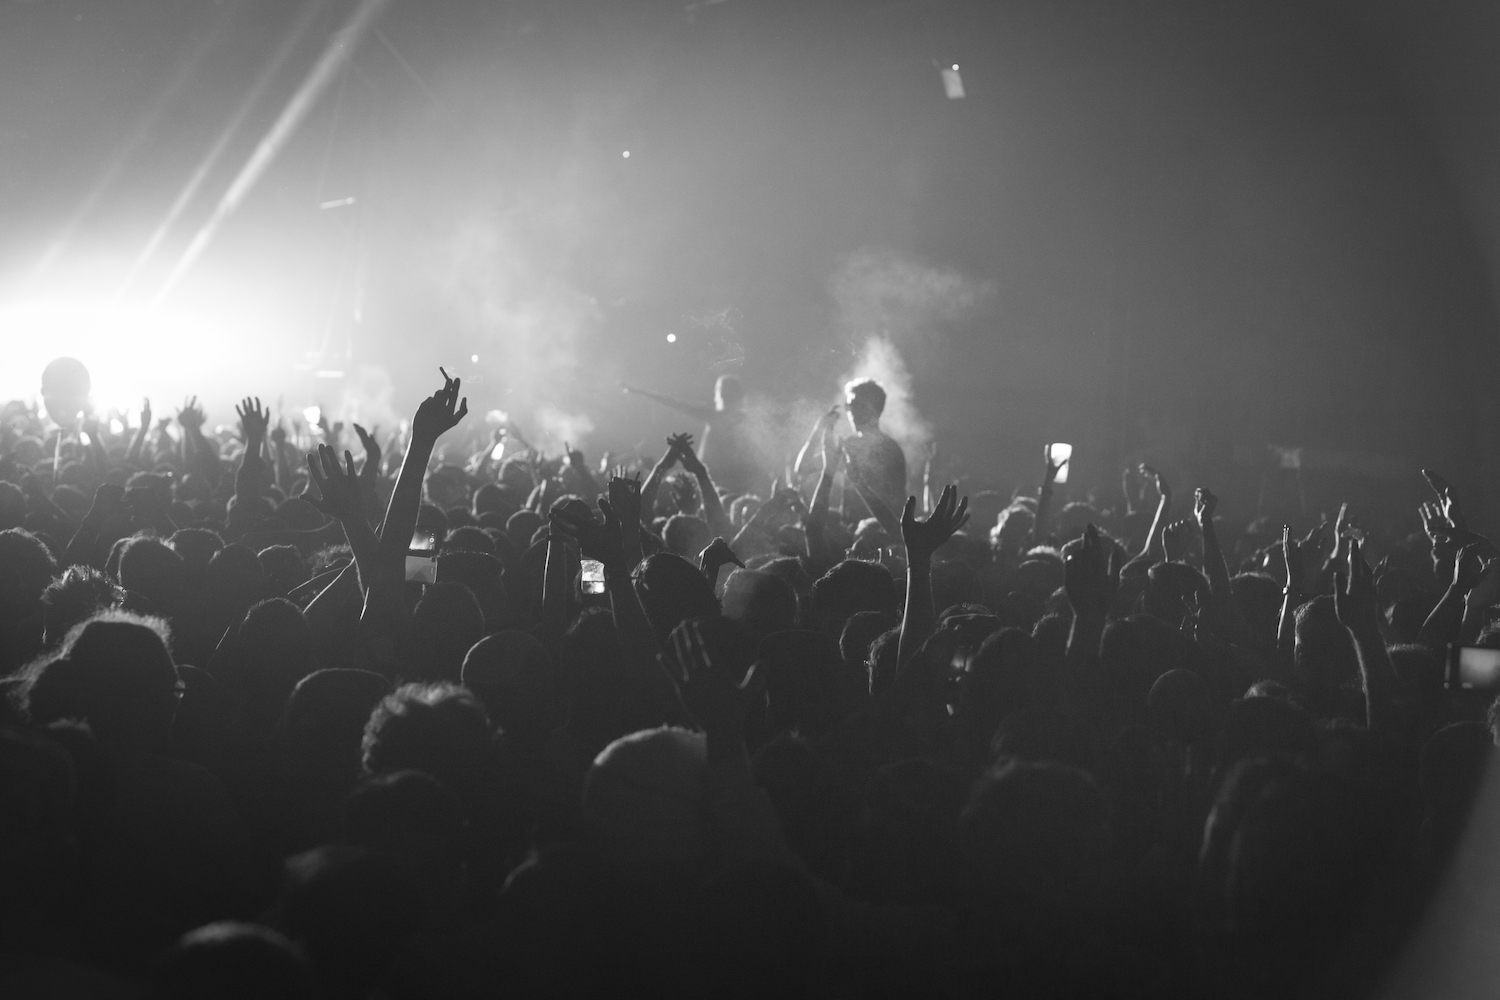 The crowd cheers on RBMA stage at Nuits sonores festival in Lyon, France on May 16th 2015